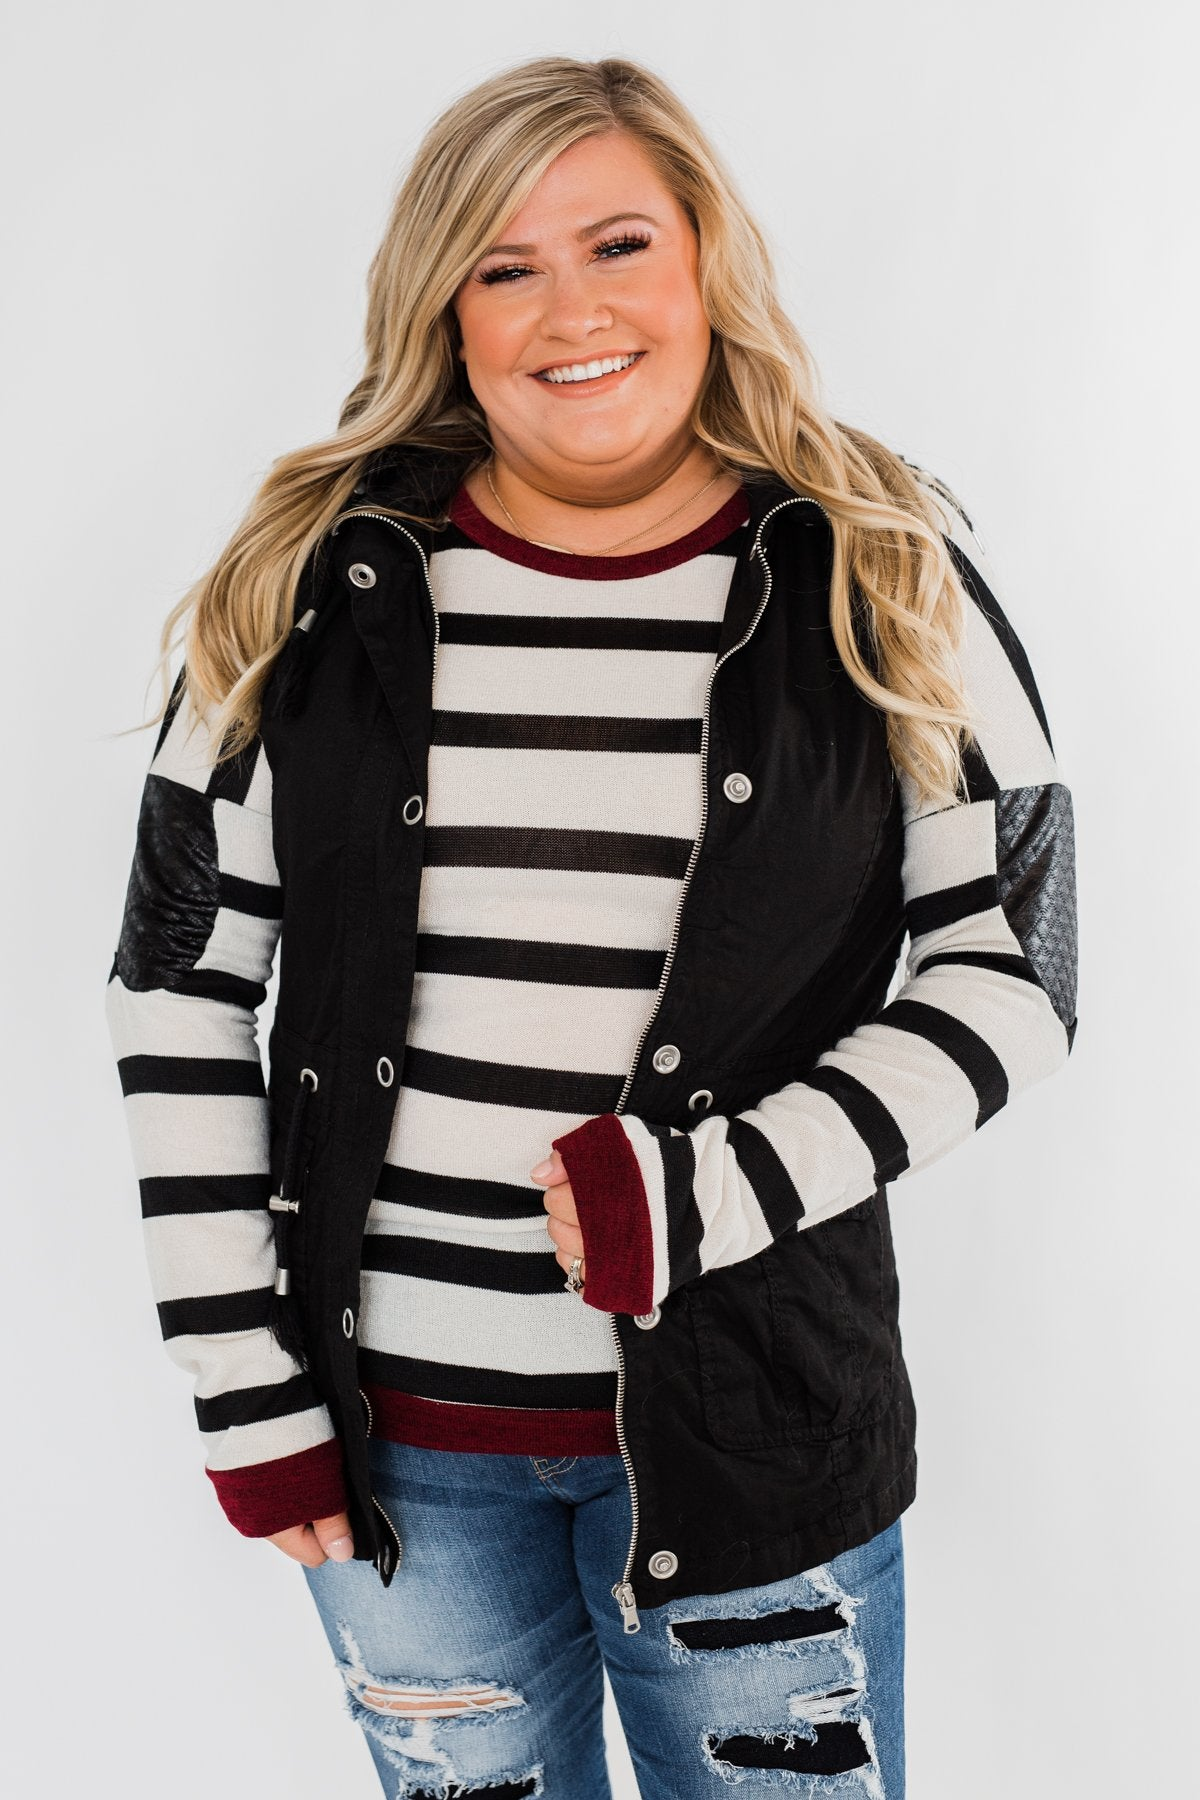 You Got it Bad Striped Top- Deep Red